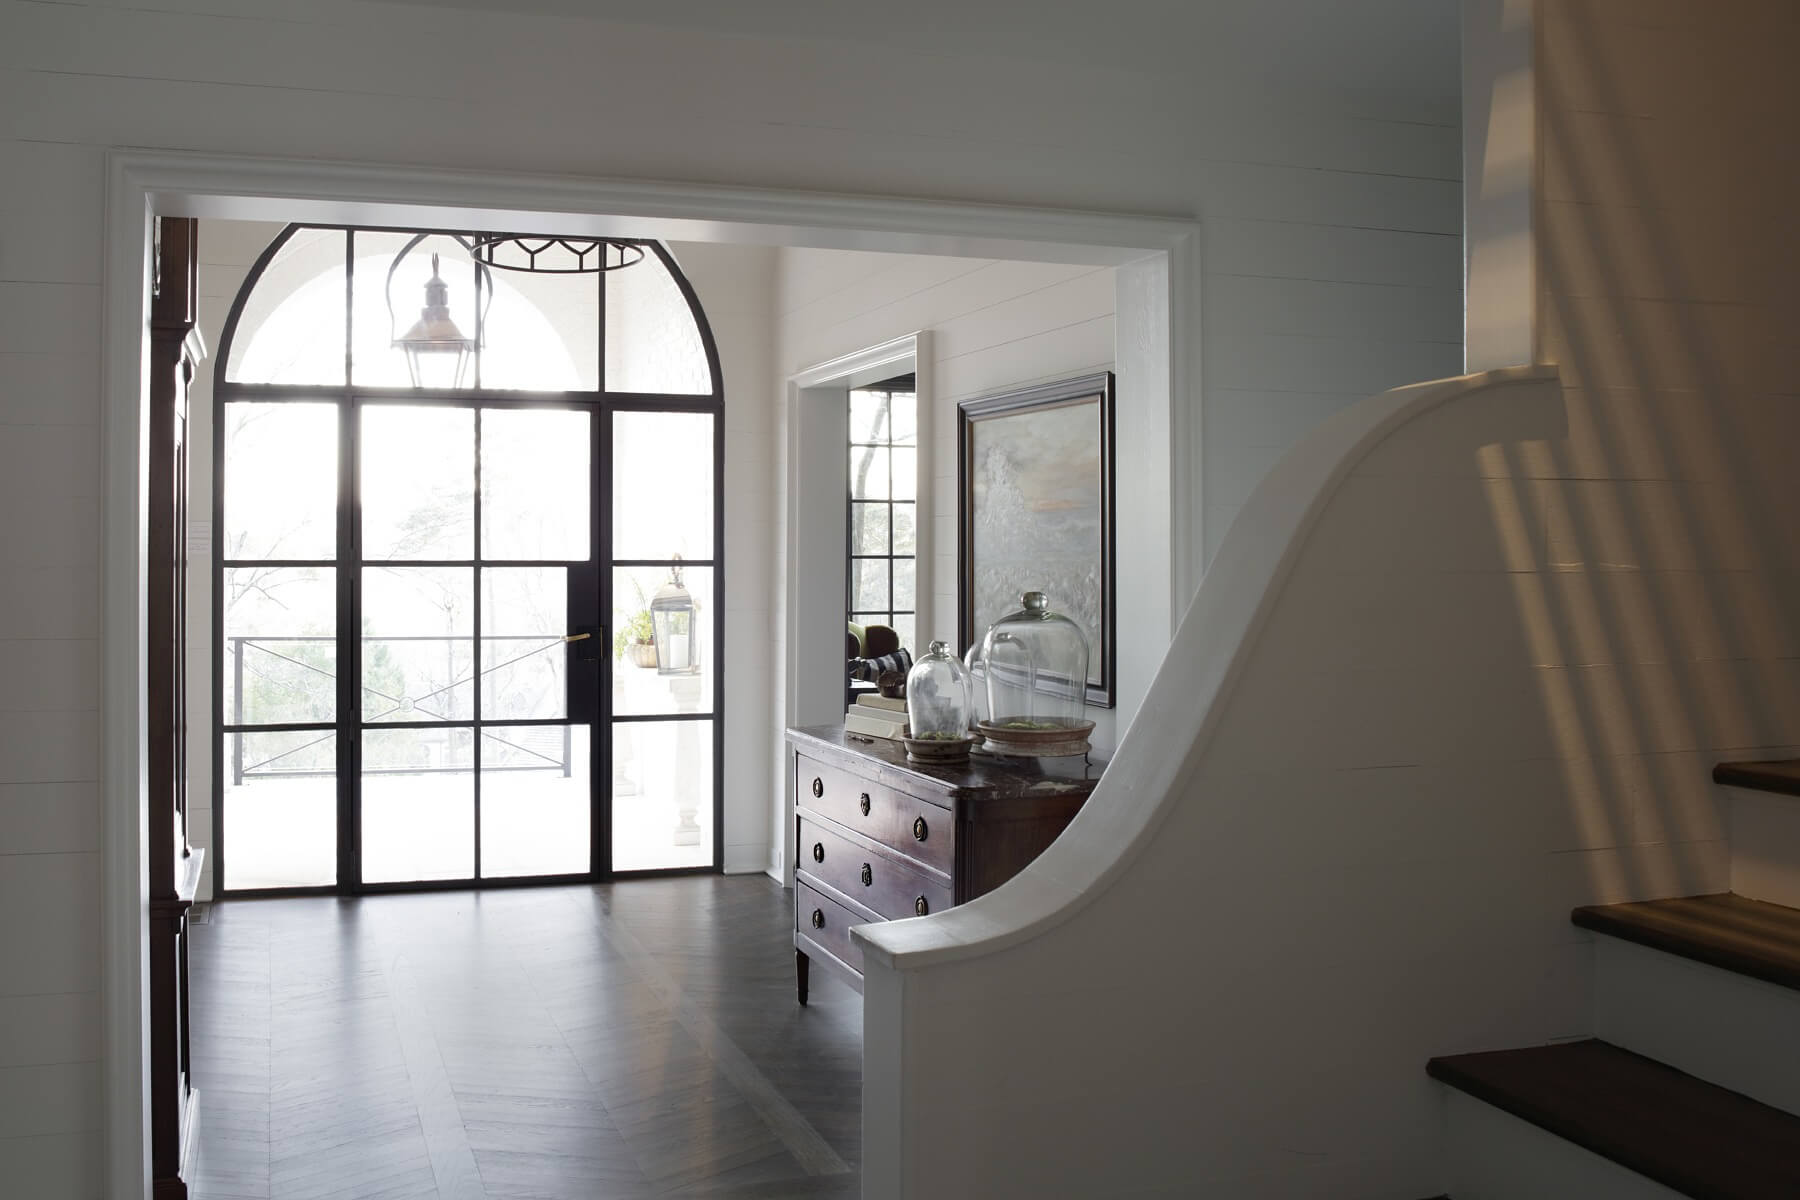 Because the property boasts an impressive view overlooking Country Club Road, Joanna says providing ample natural light through a plethora of windows, like this airy, light-filled foyer, was essential to the home's layout.